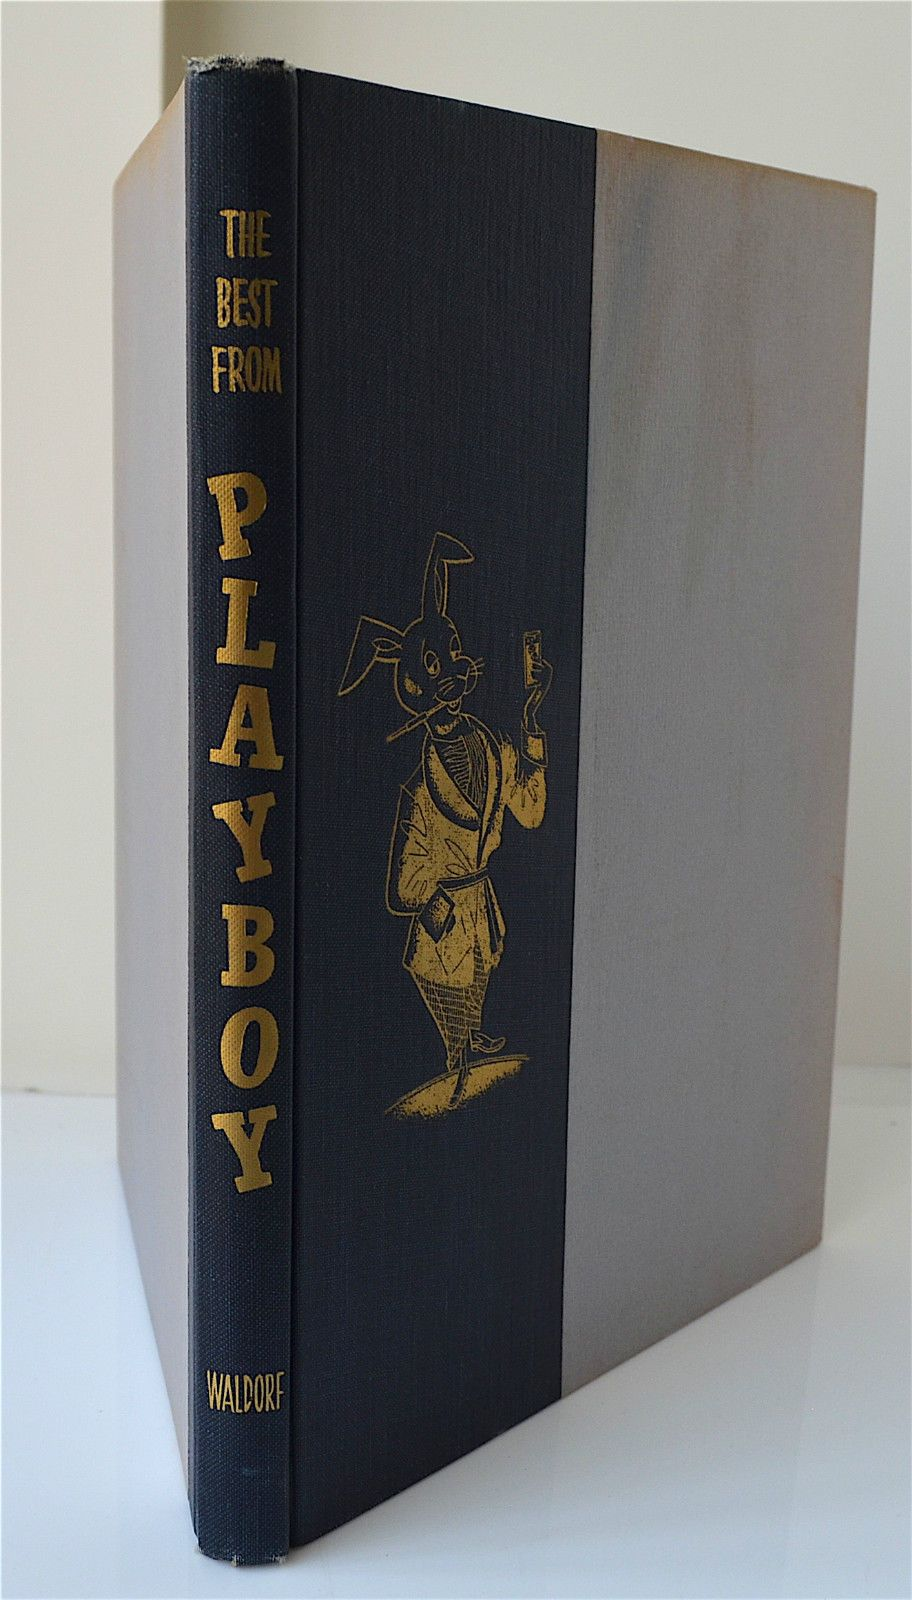 The Best From Playboy 1954 Hardcover Book Edited By Hugh Hefner